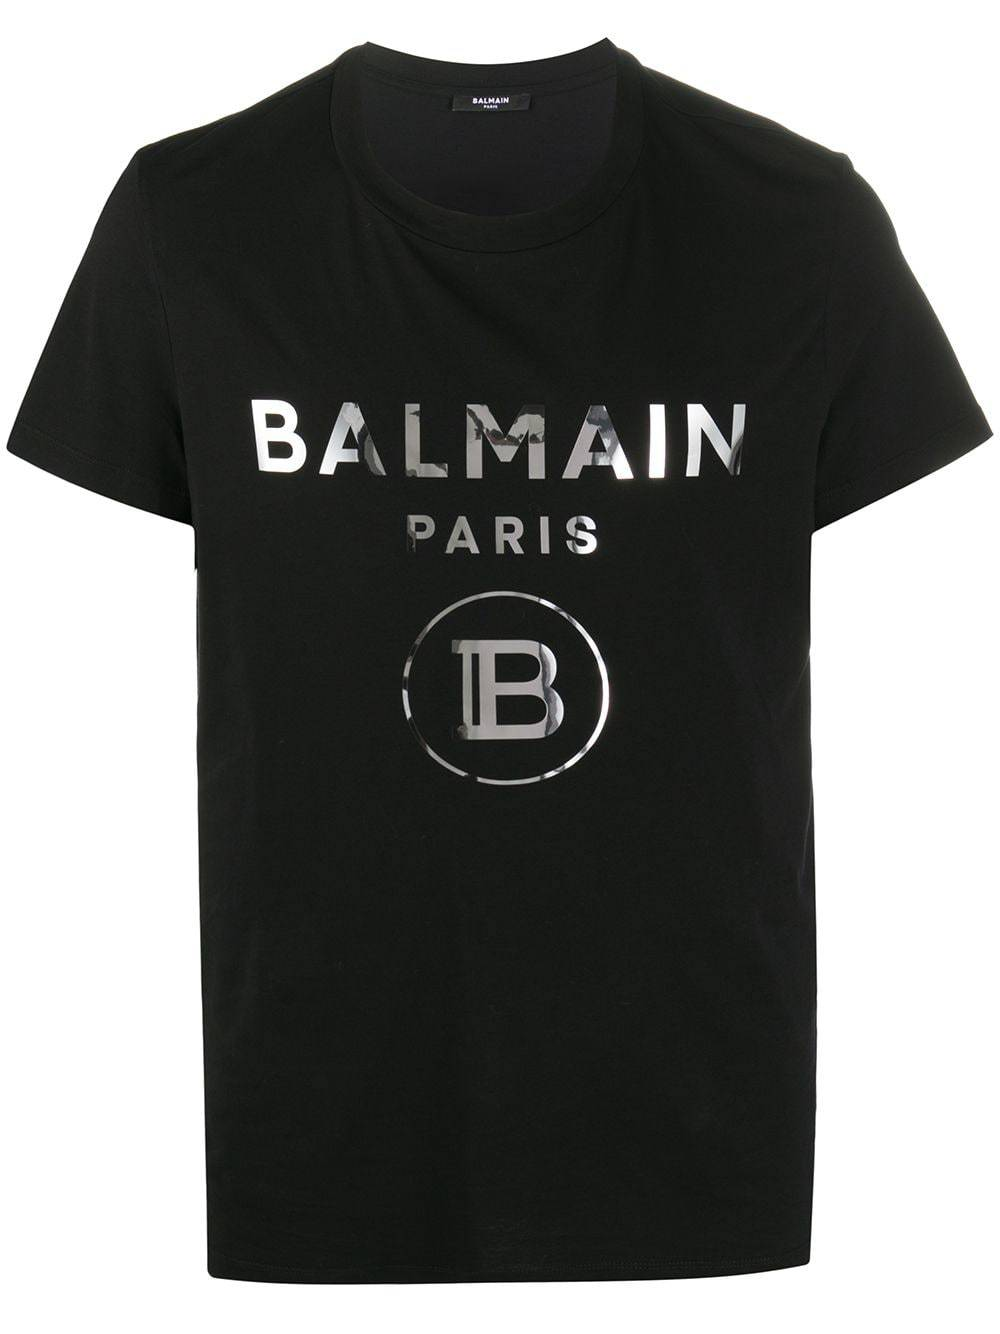 BALMAIN Mirrored Logo T-Shirt Black - Maison De Fashion